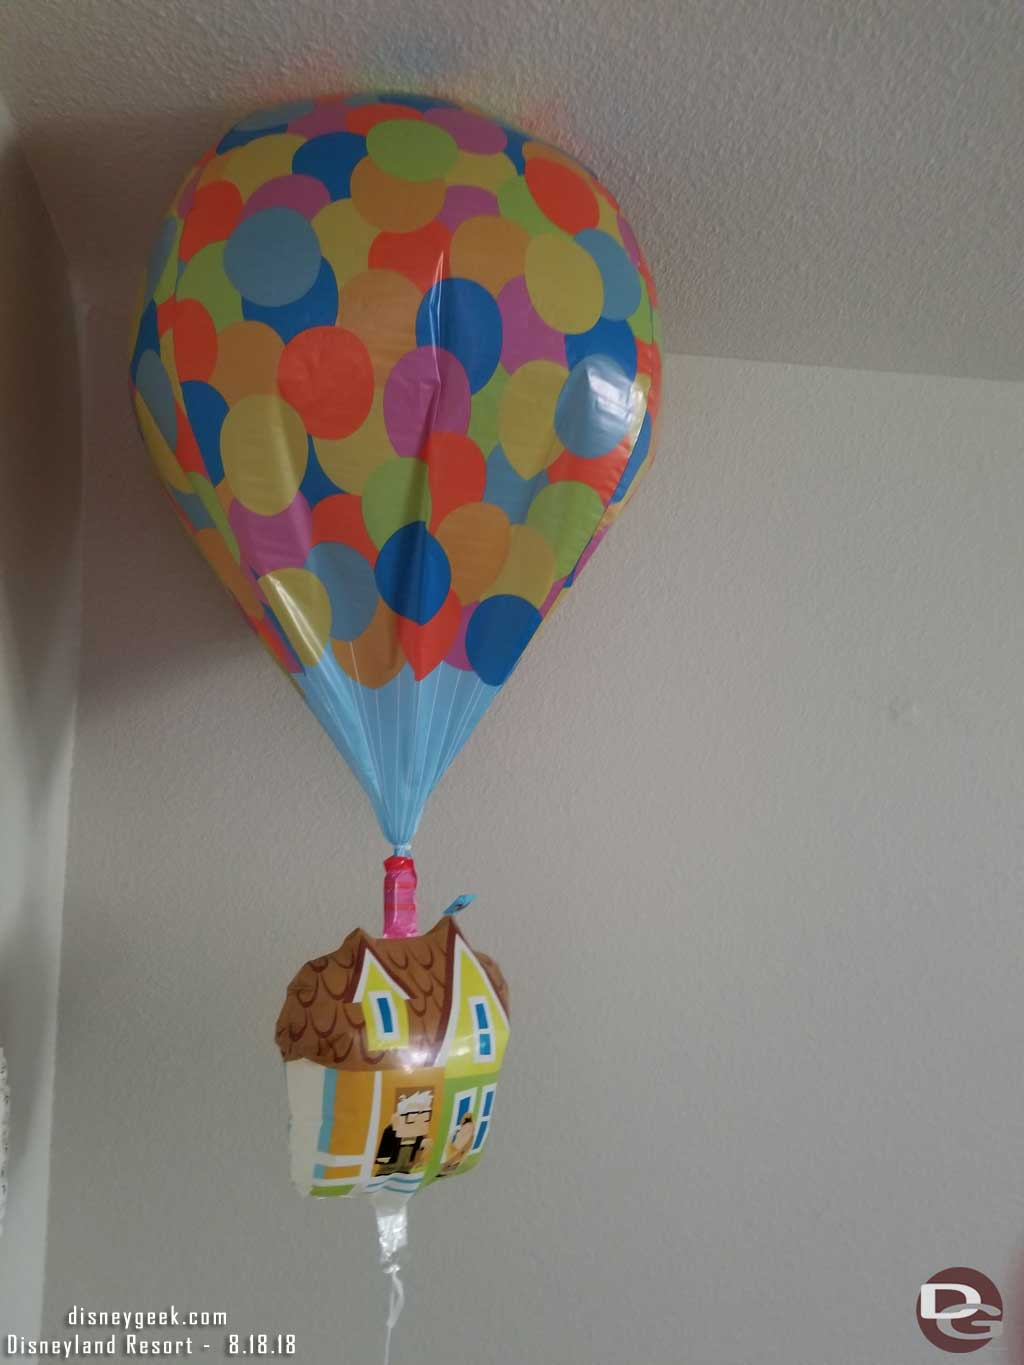 Up! Balloon that was purchased on 7/13 as of 8/18.